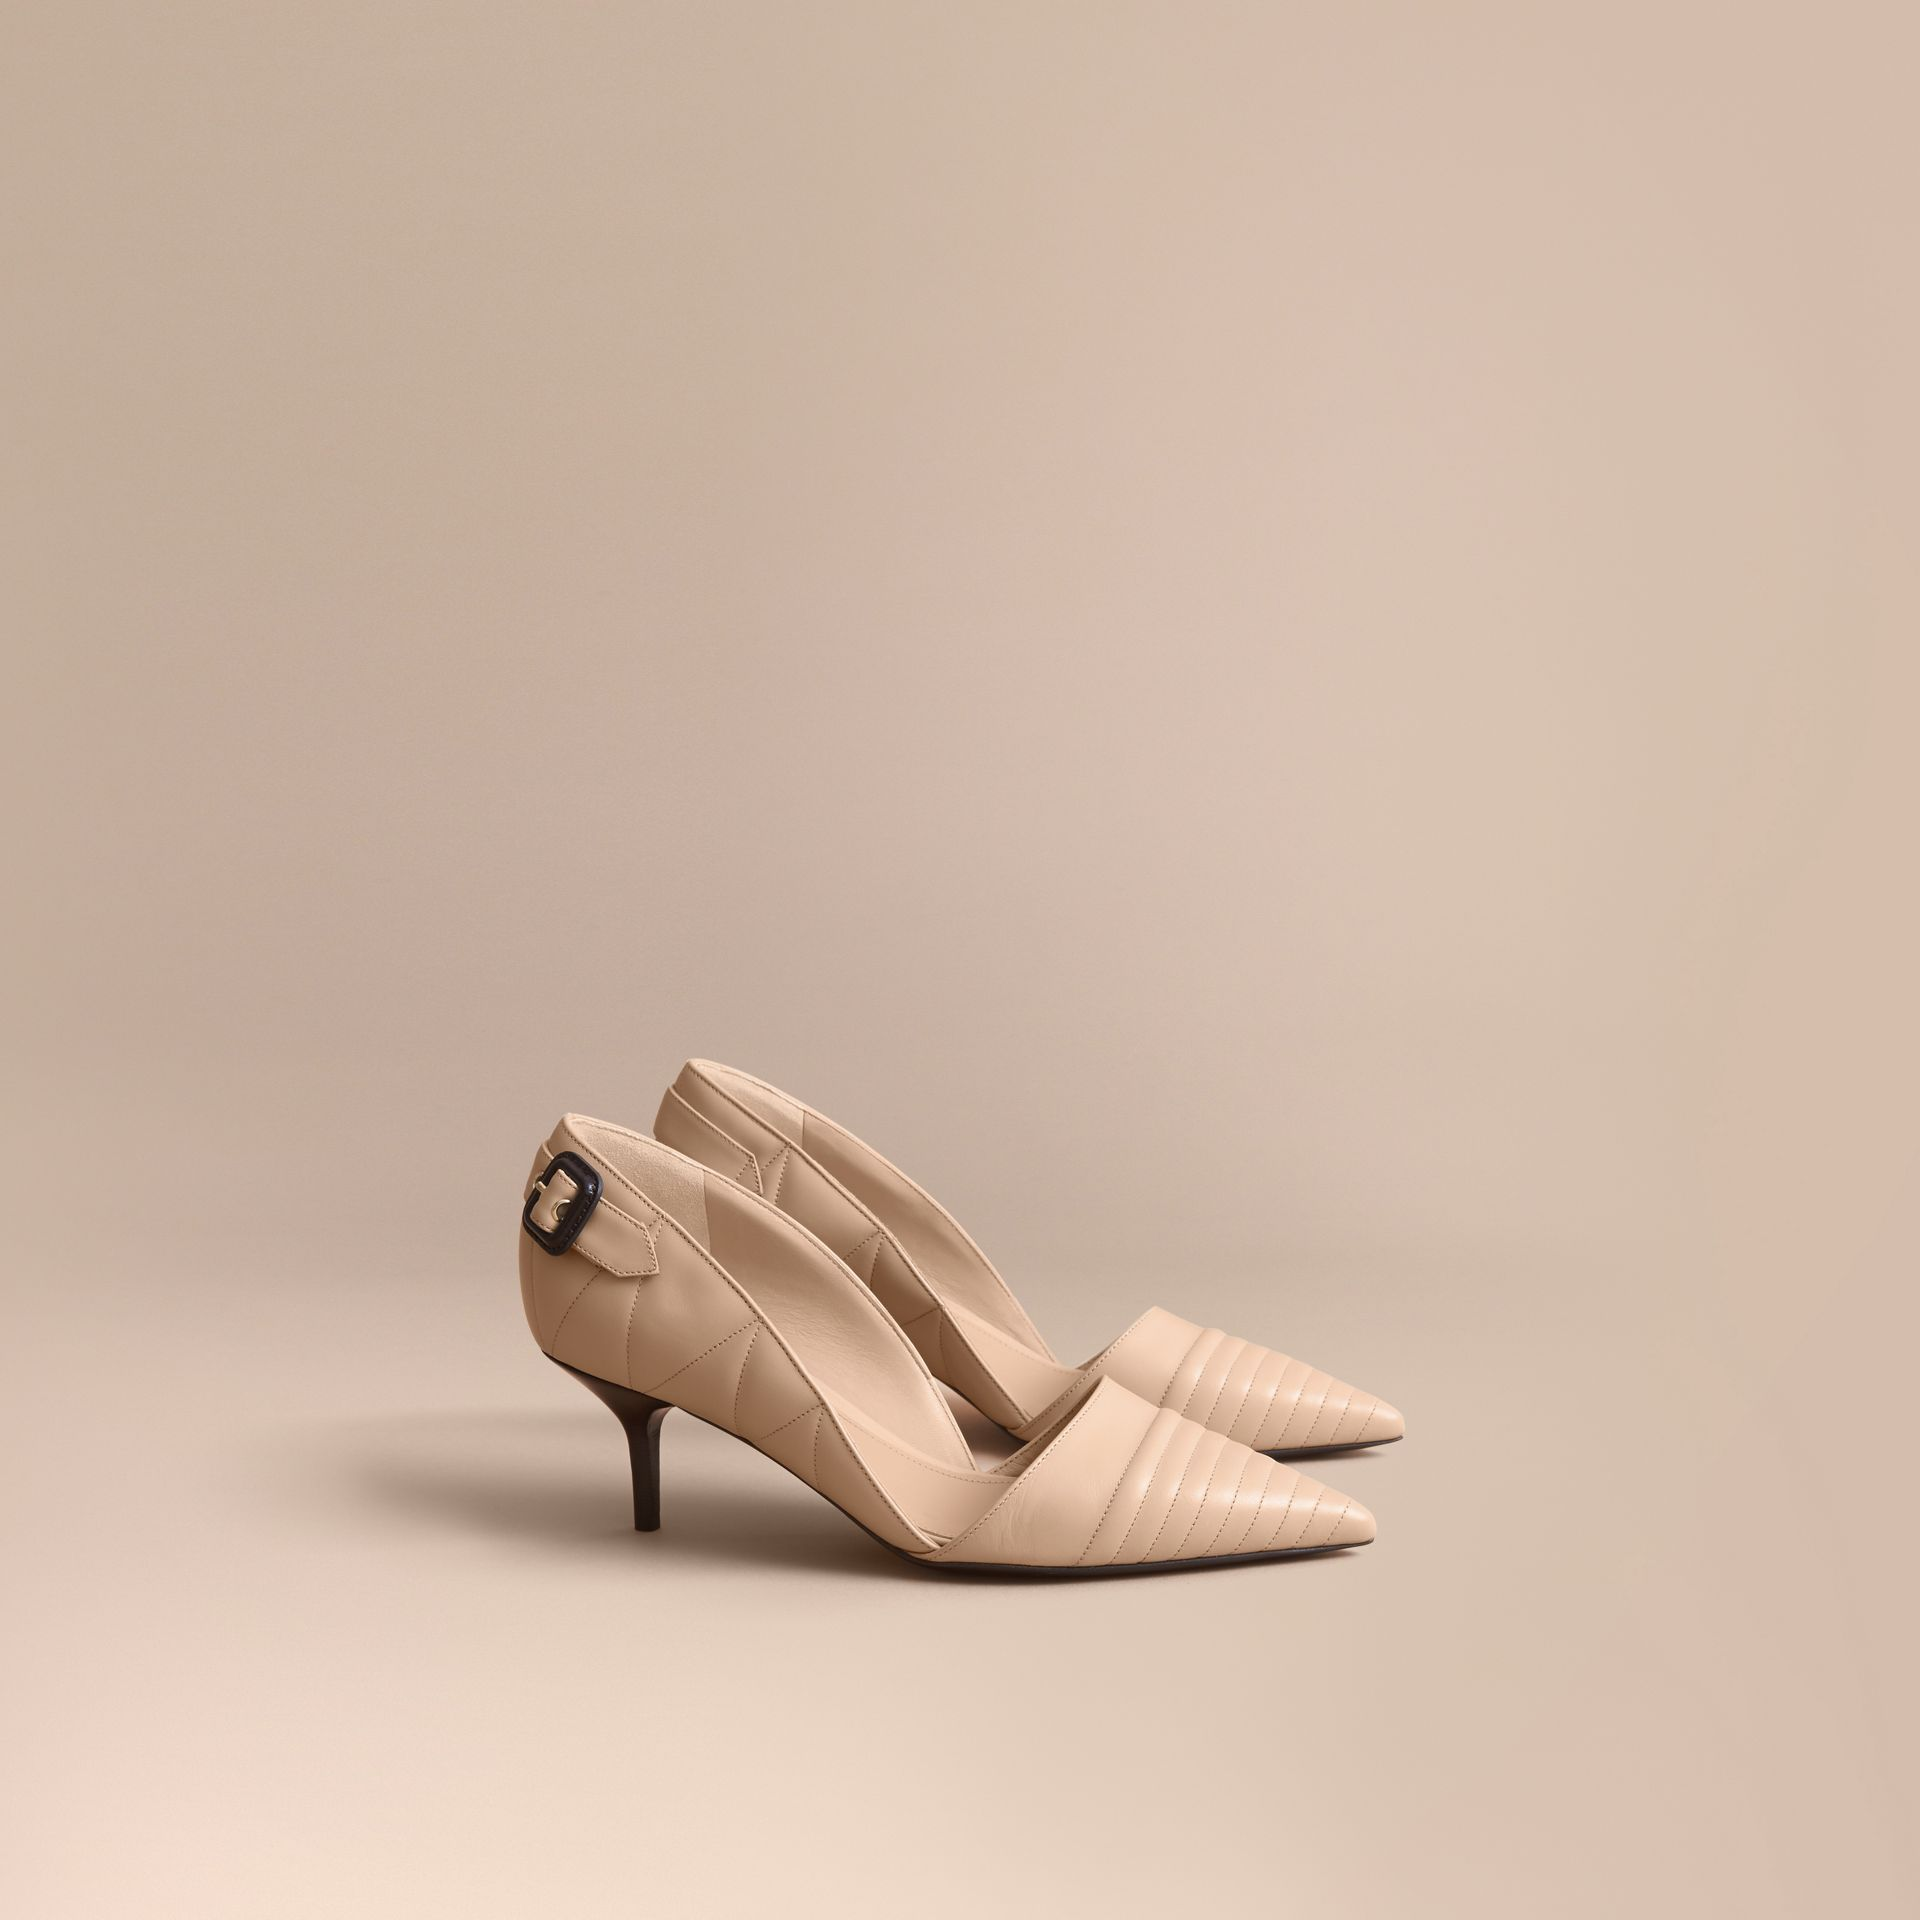 Quilted Leather D'Orsay Pumps in Pale Taupe - Women | Burberry - gallery image 1